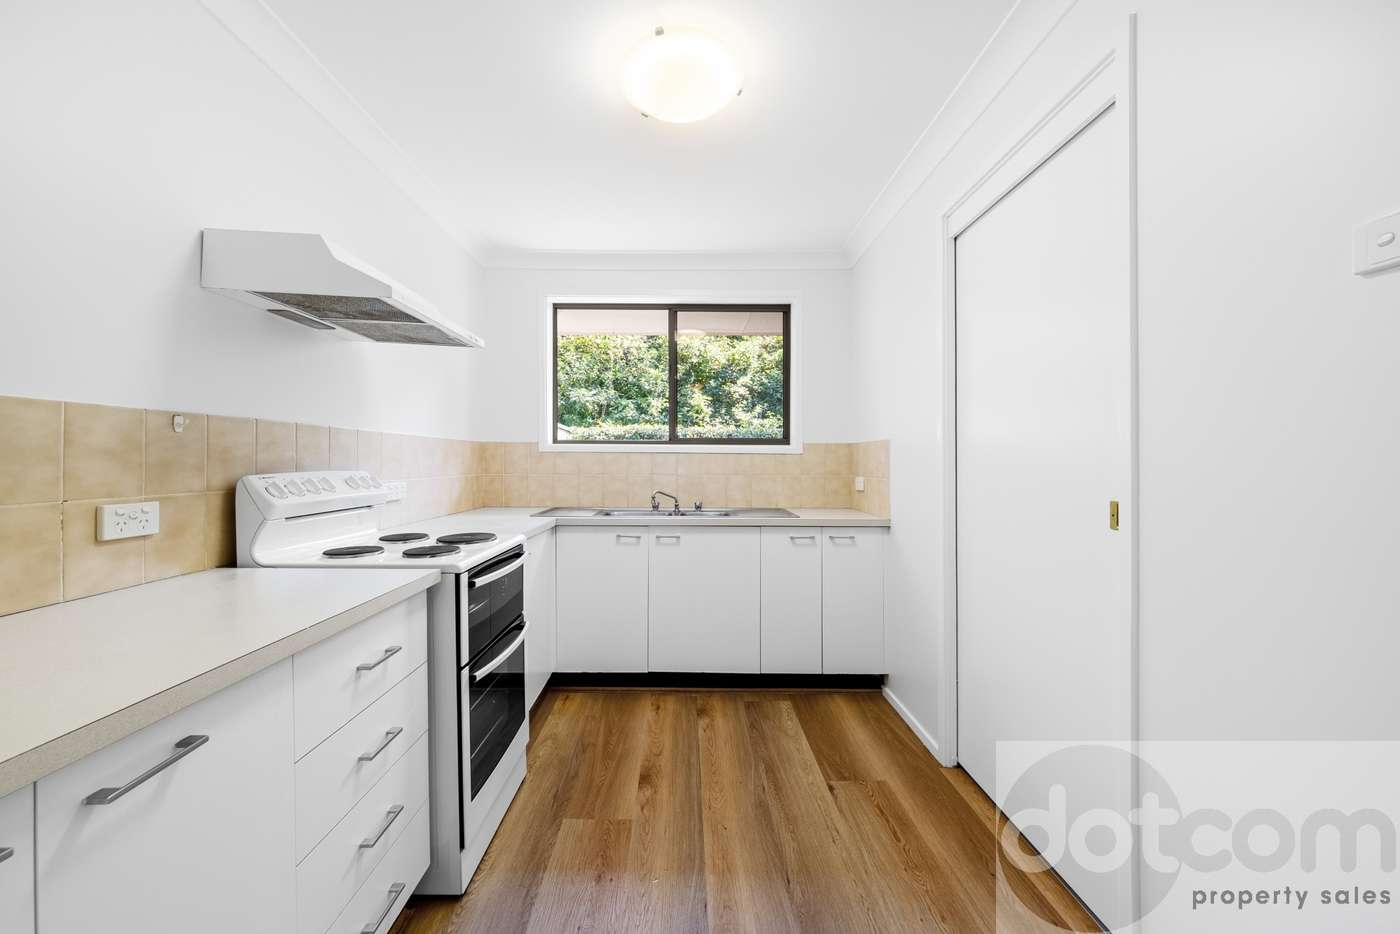 Fifth view of Homely villa listing, 2/207 Albany Street, Point Frederick NSW 2250